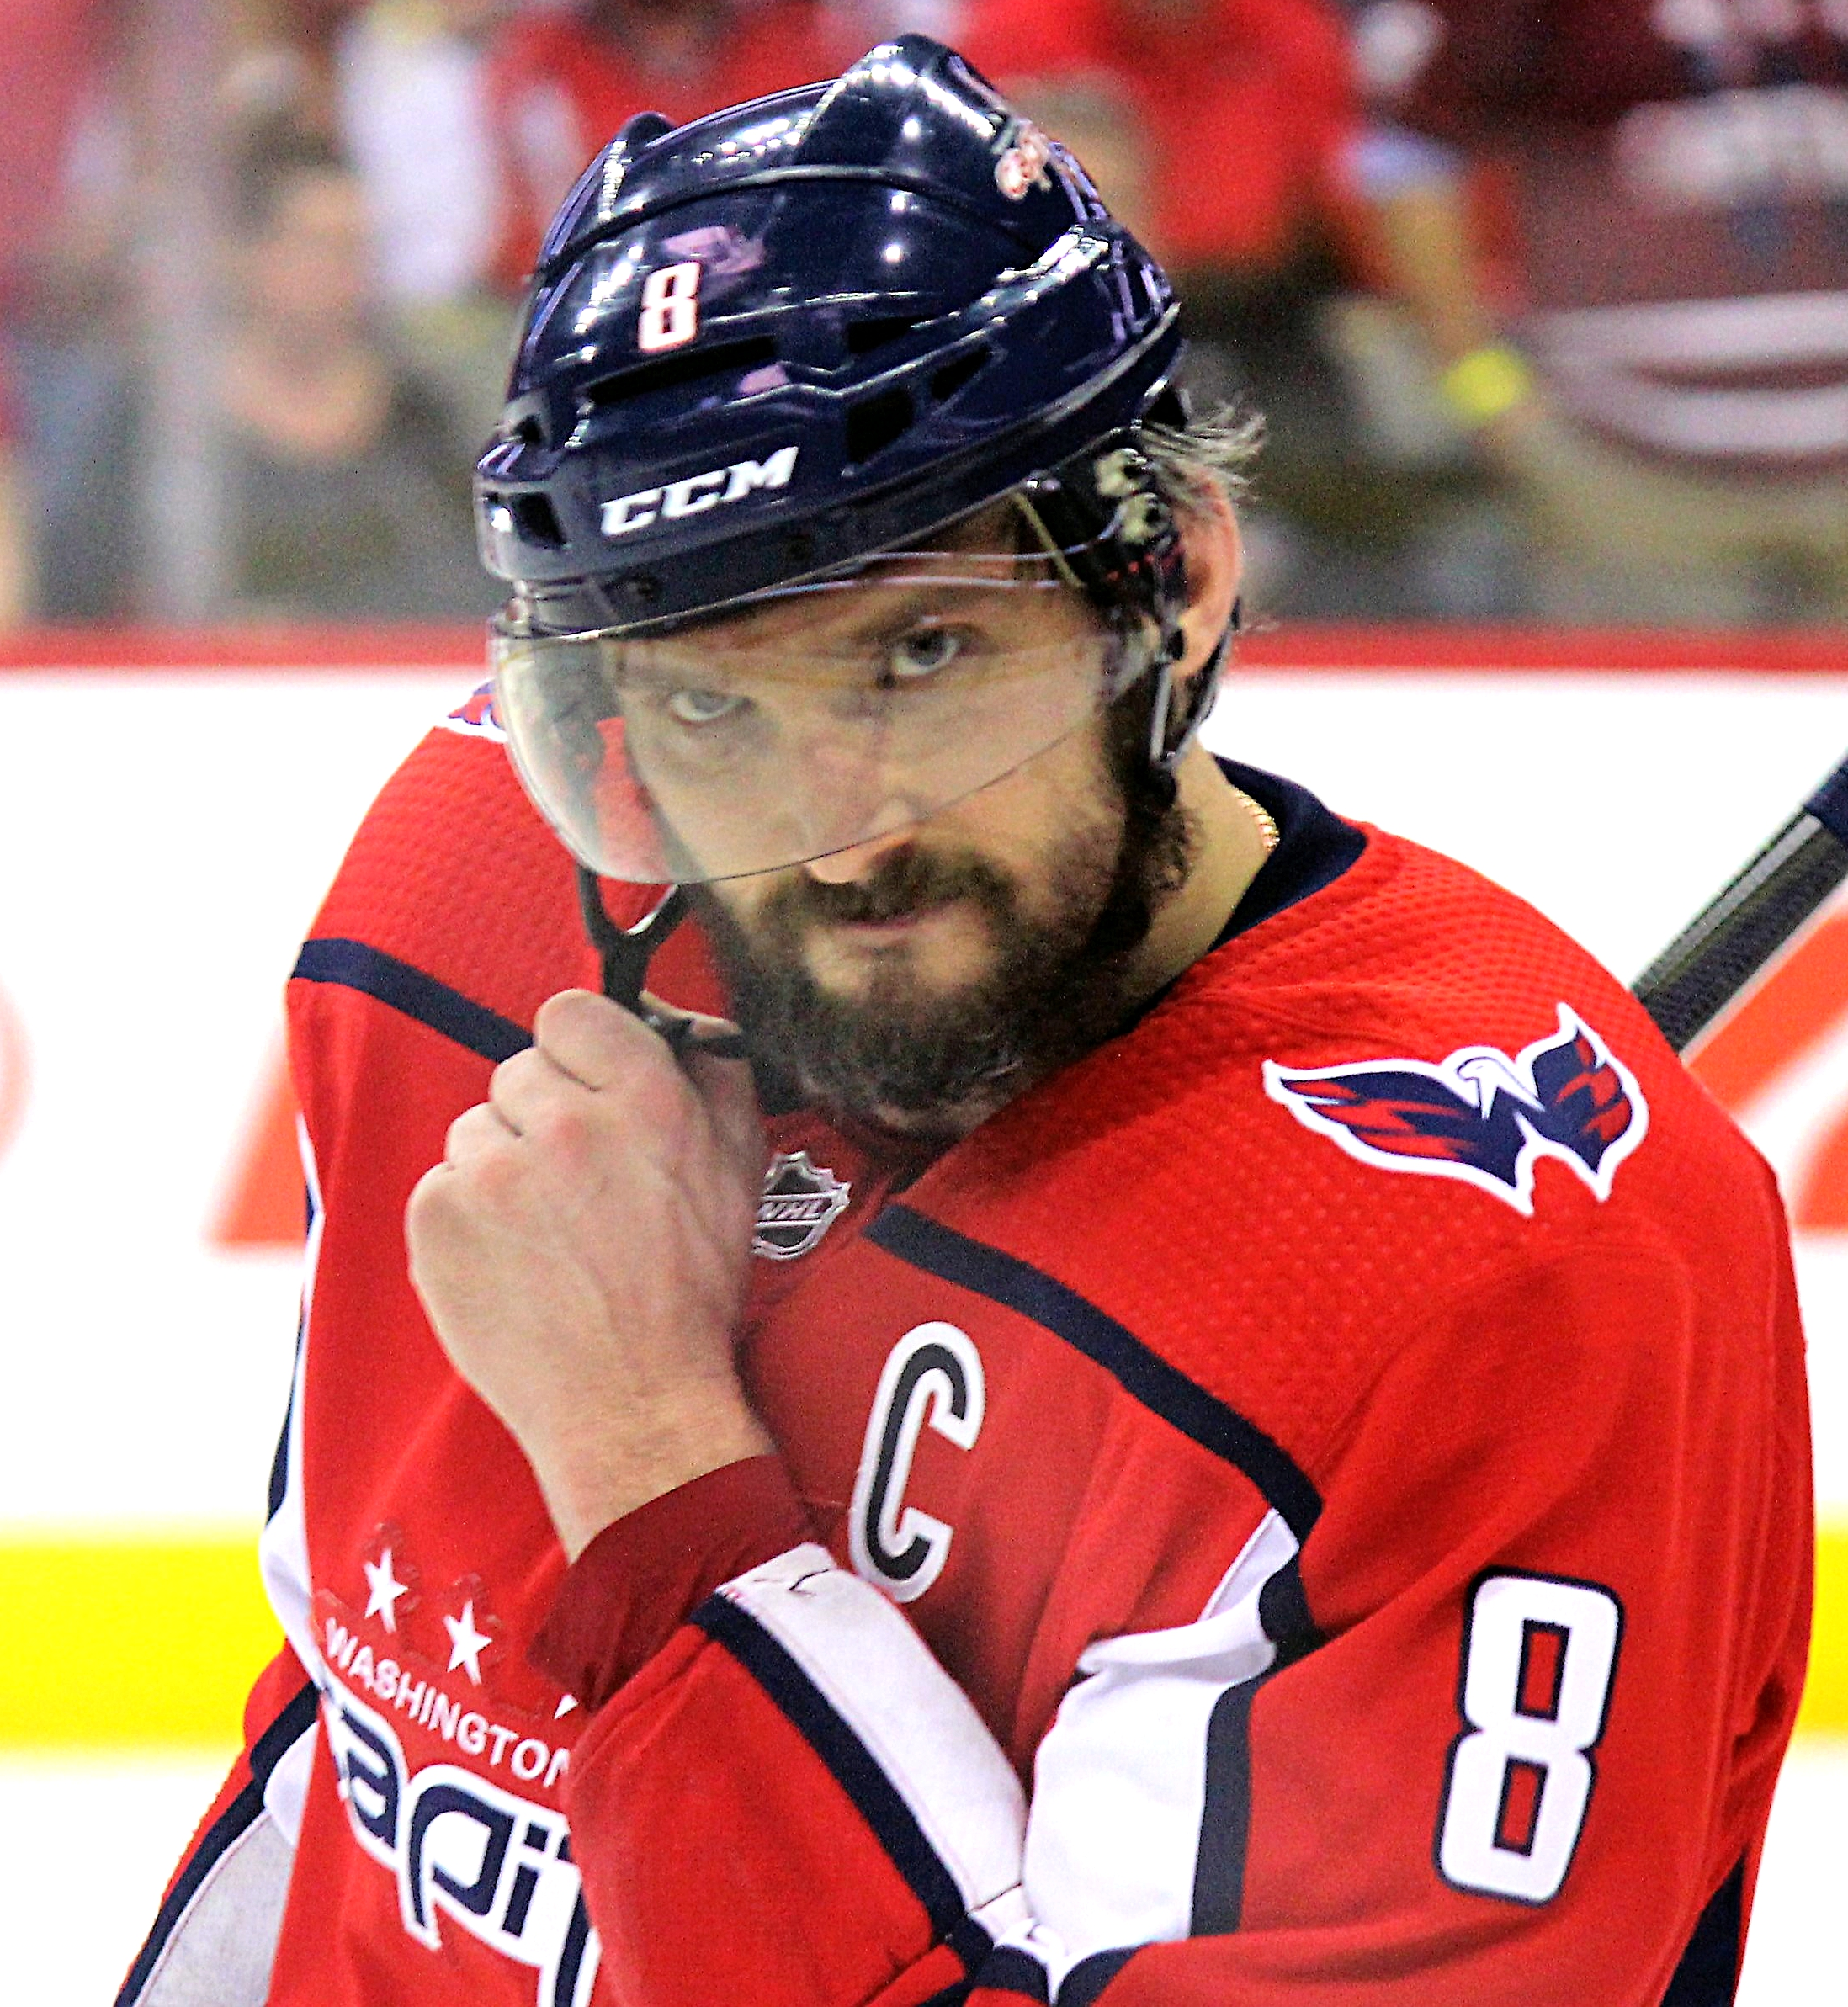 Alex Ovechkin is living his best life with the Stanley Cup